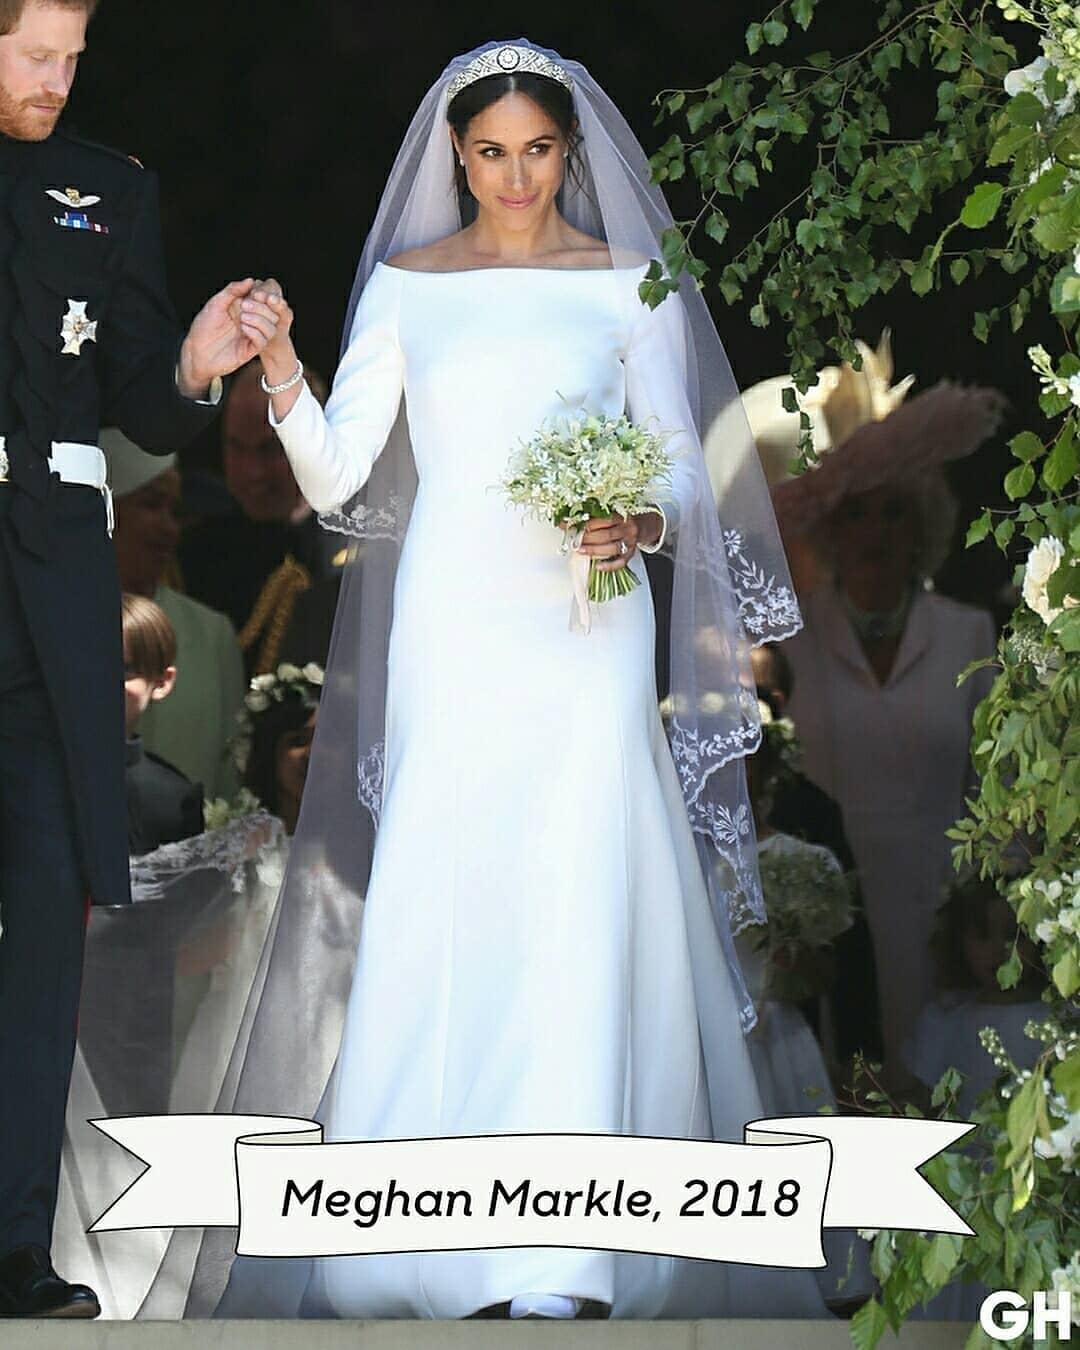 Timeless Wedding Gown: #Royalwedding A Full Look At Meghan Markle's Timeless